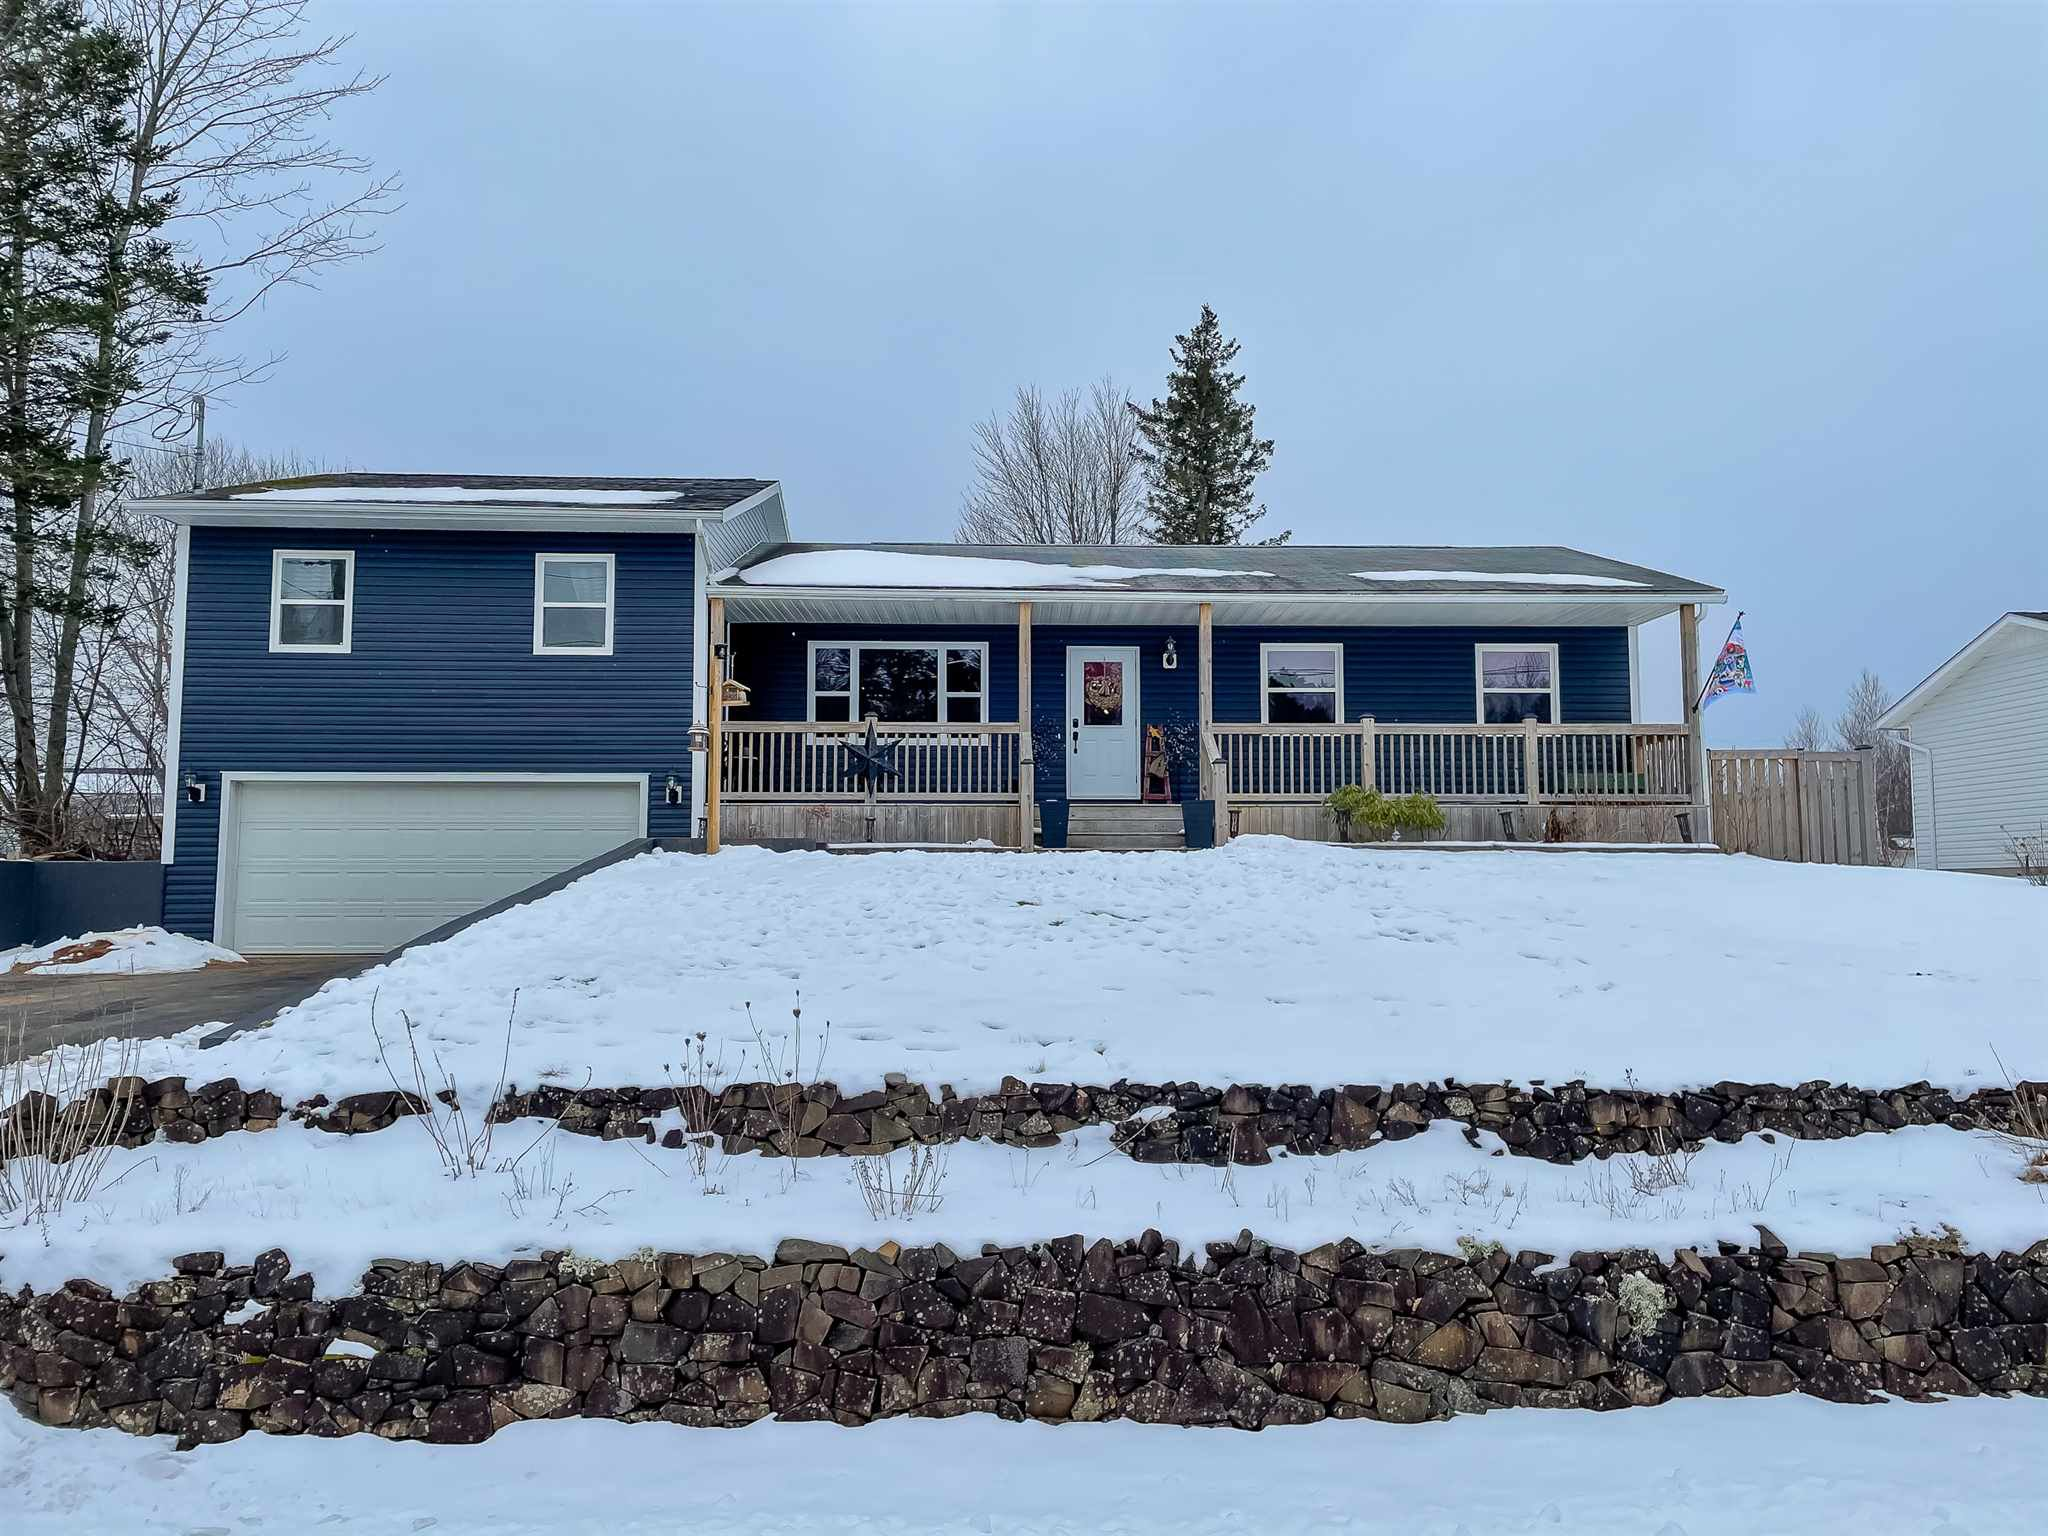 Main Photo: 26 Cherry Lane in Kingston: 404-Kings County Residential for sale (Annapolis Valley)  : MLS®# 202100547